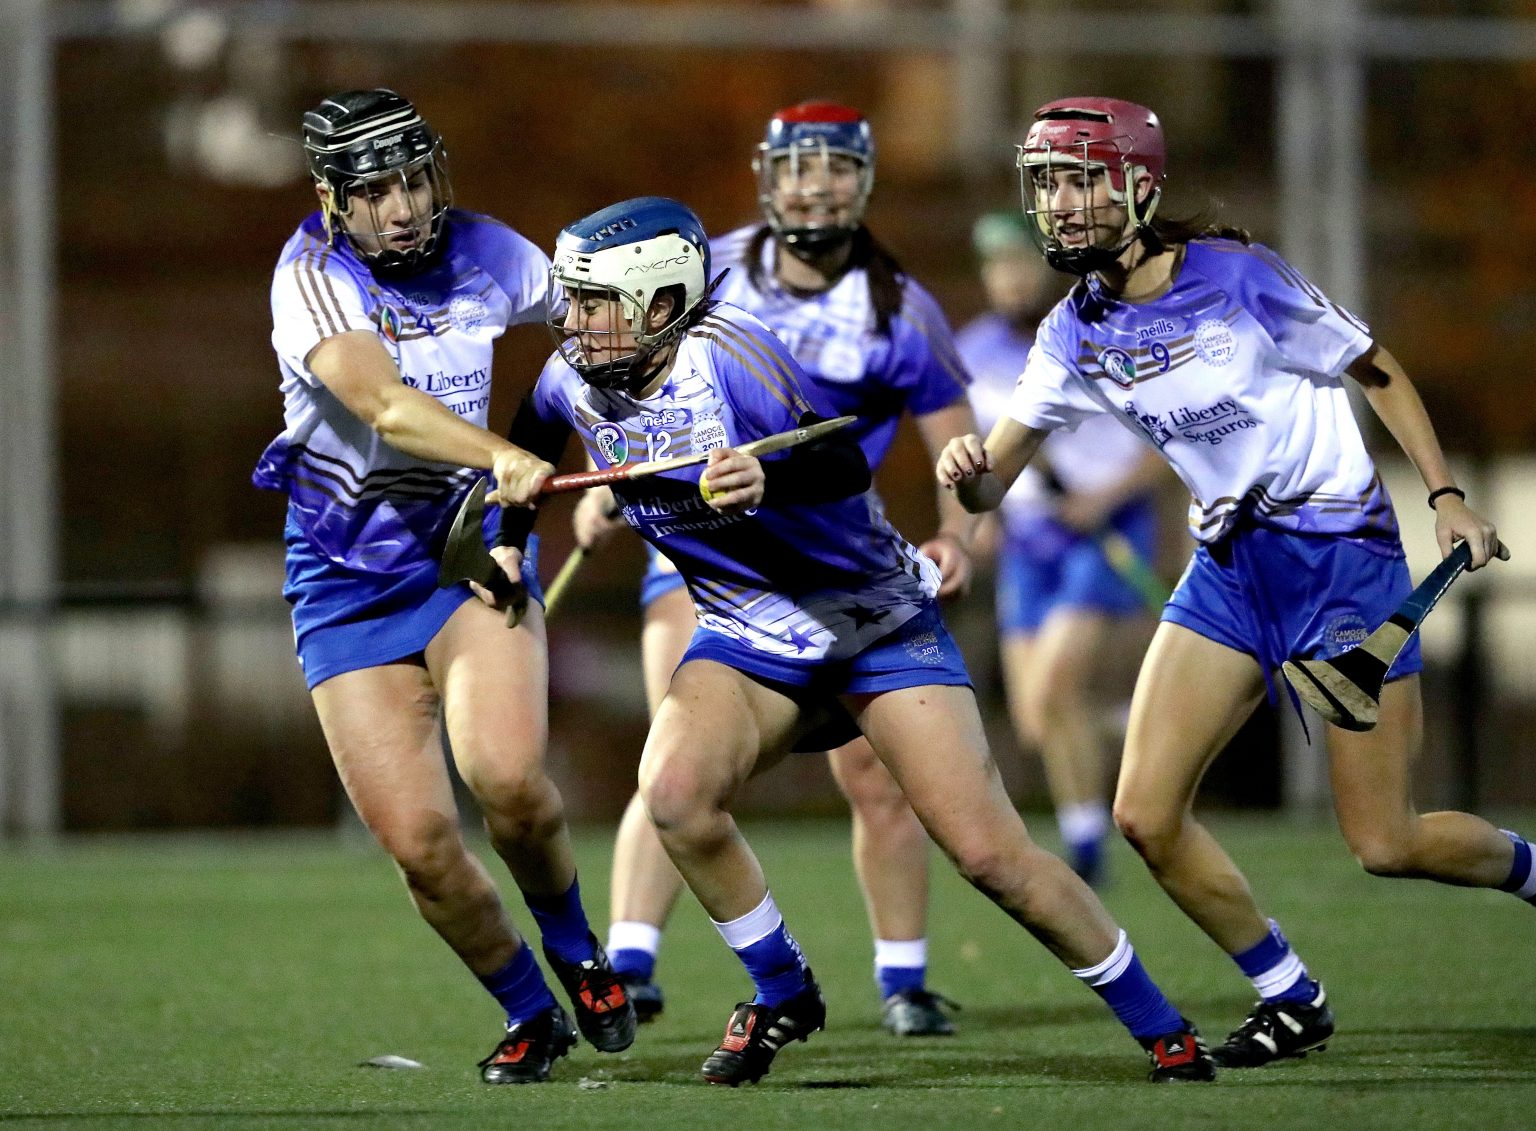 Action shot from the 2017 Inaugural Camogie All Stars Game In Madrid